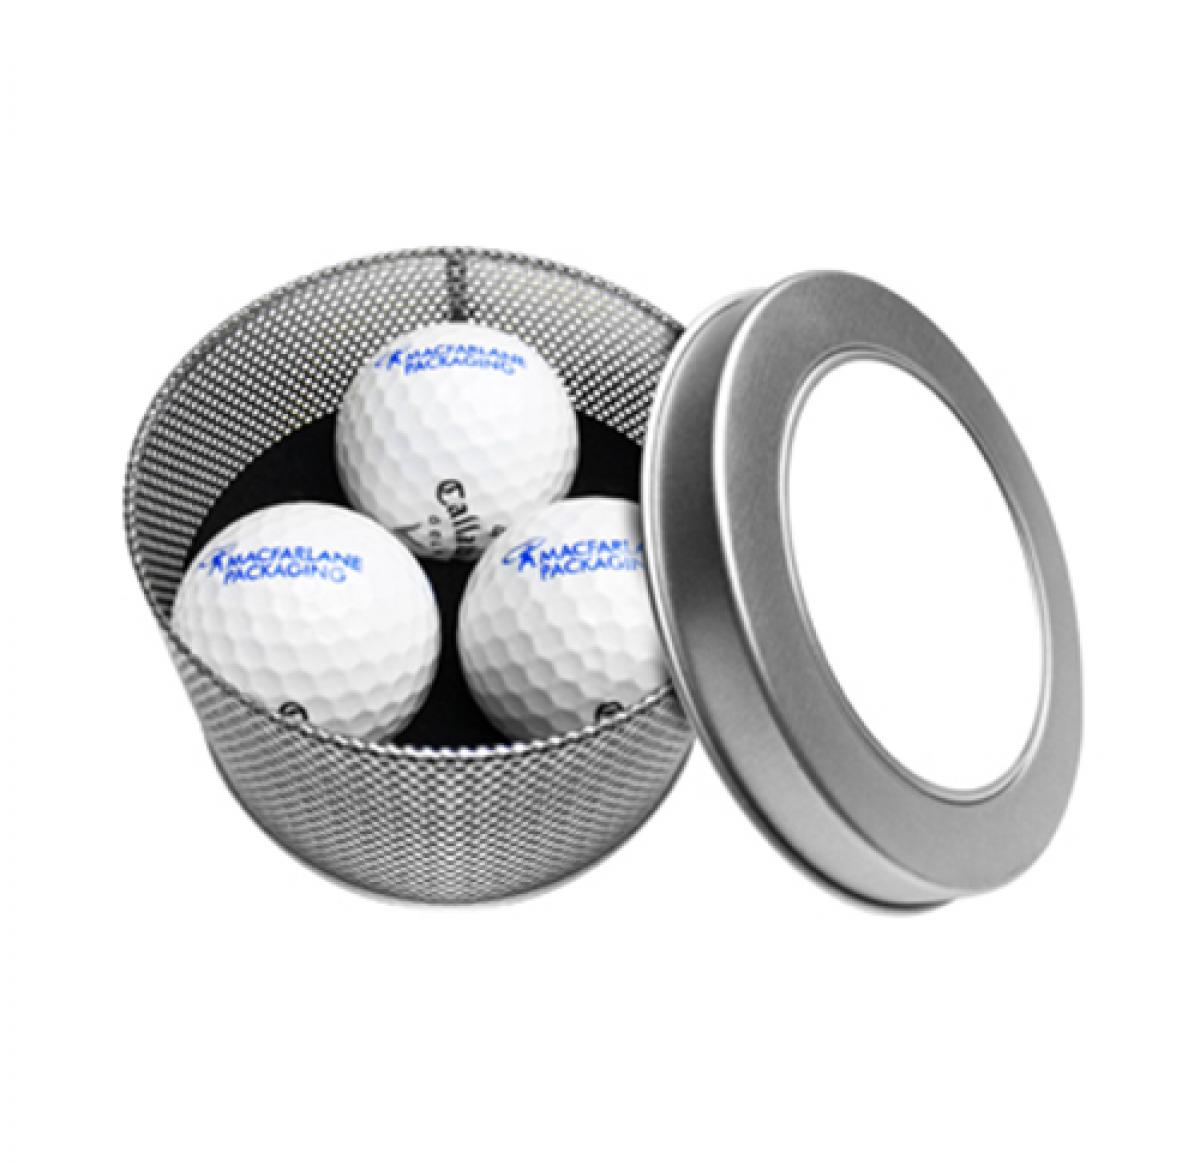 Golf Gift Tin 2 - Buy Promotional Products UK | Corporate Gifts | Promotional Items